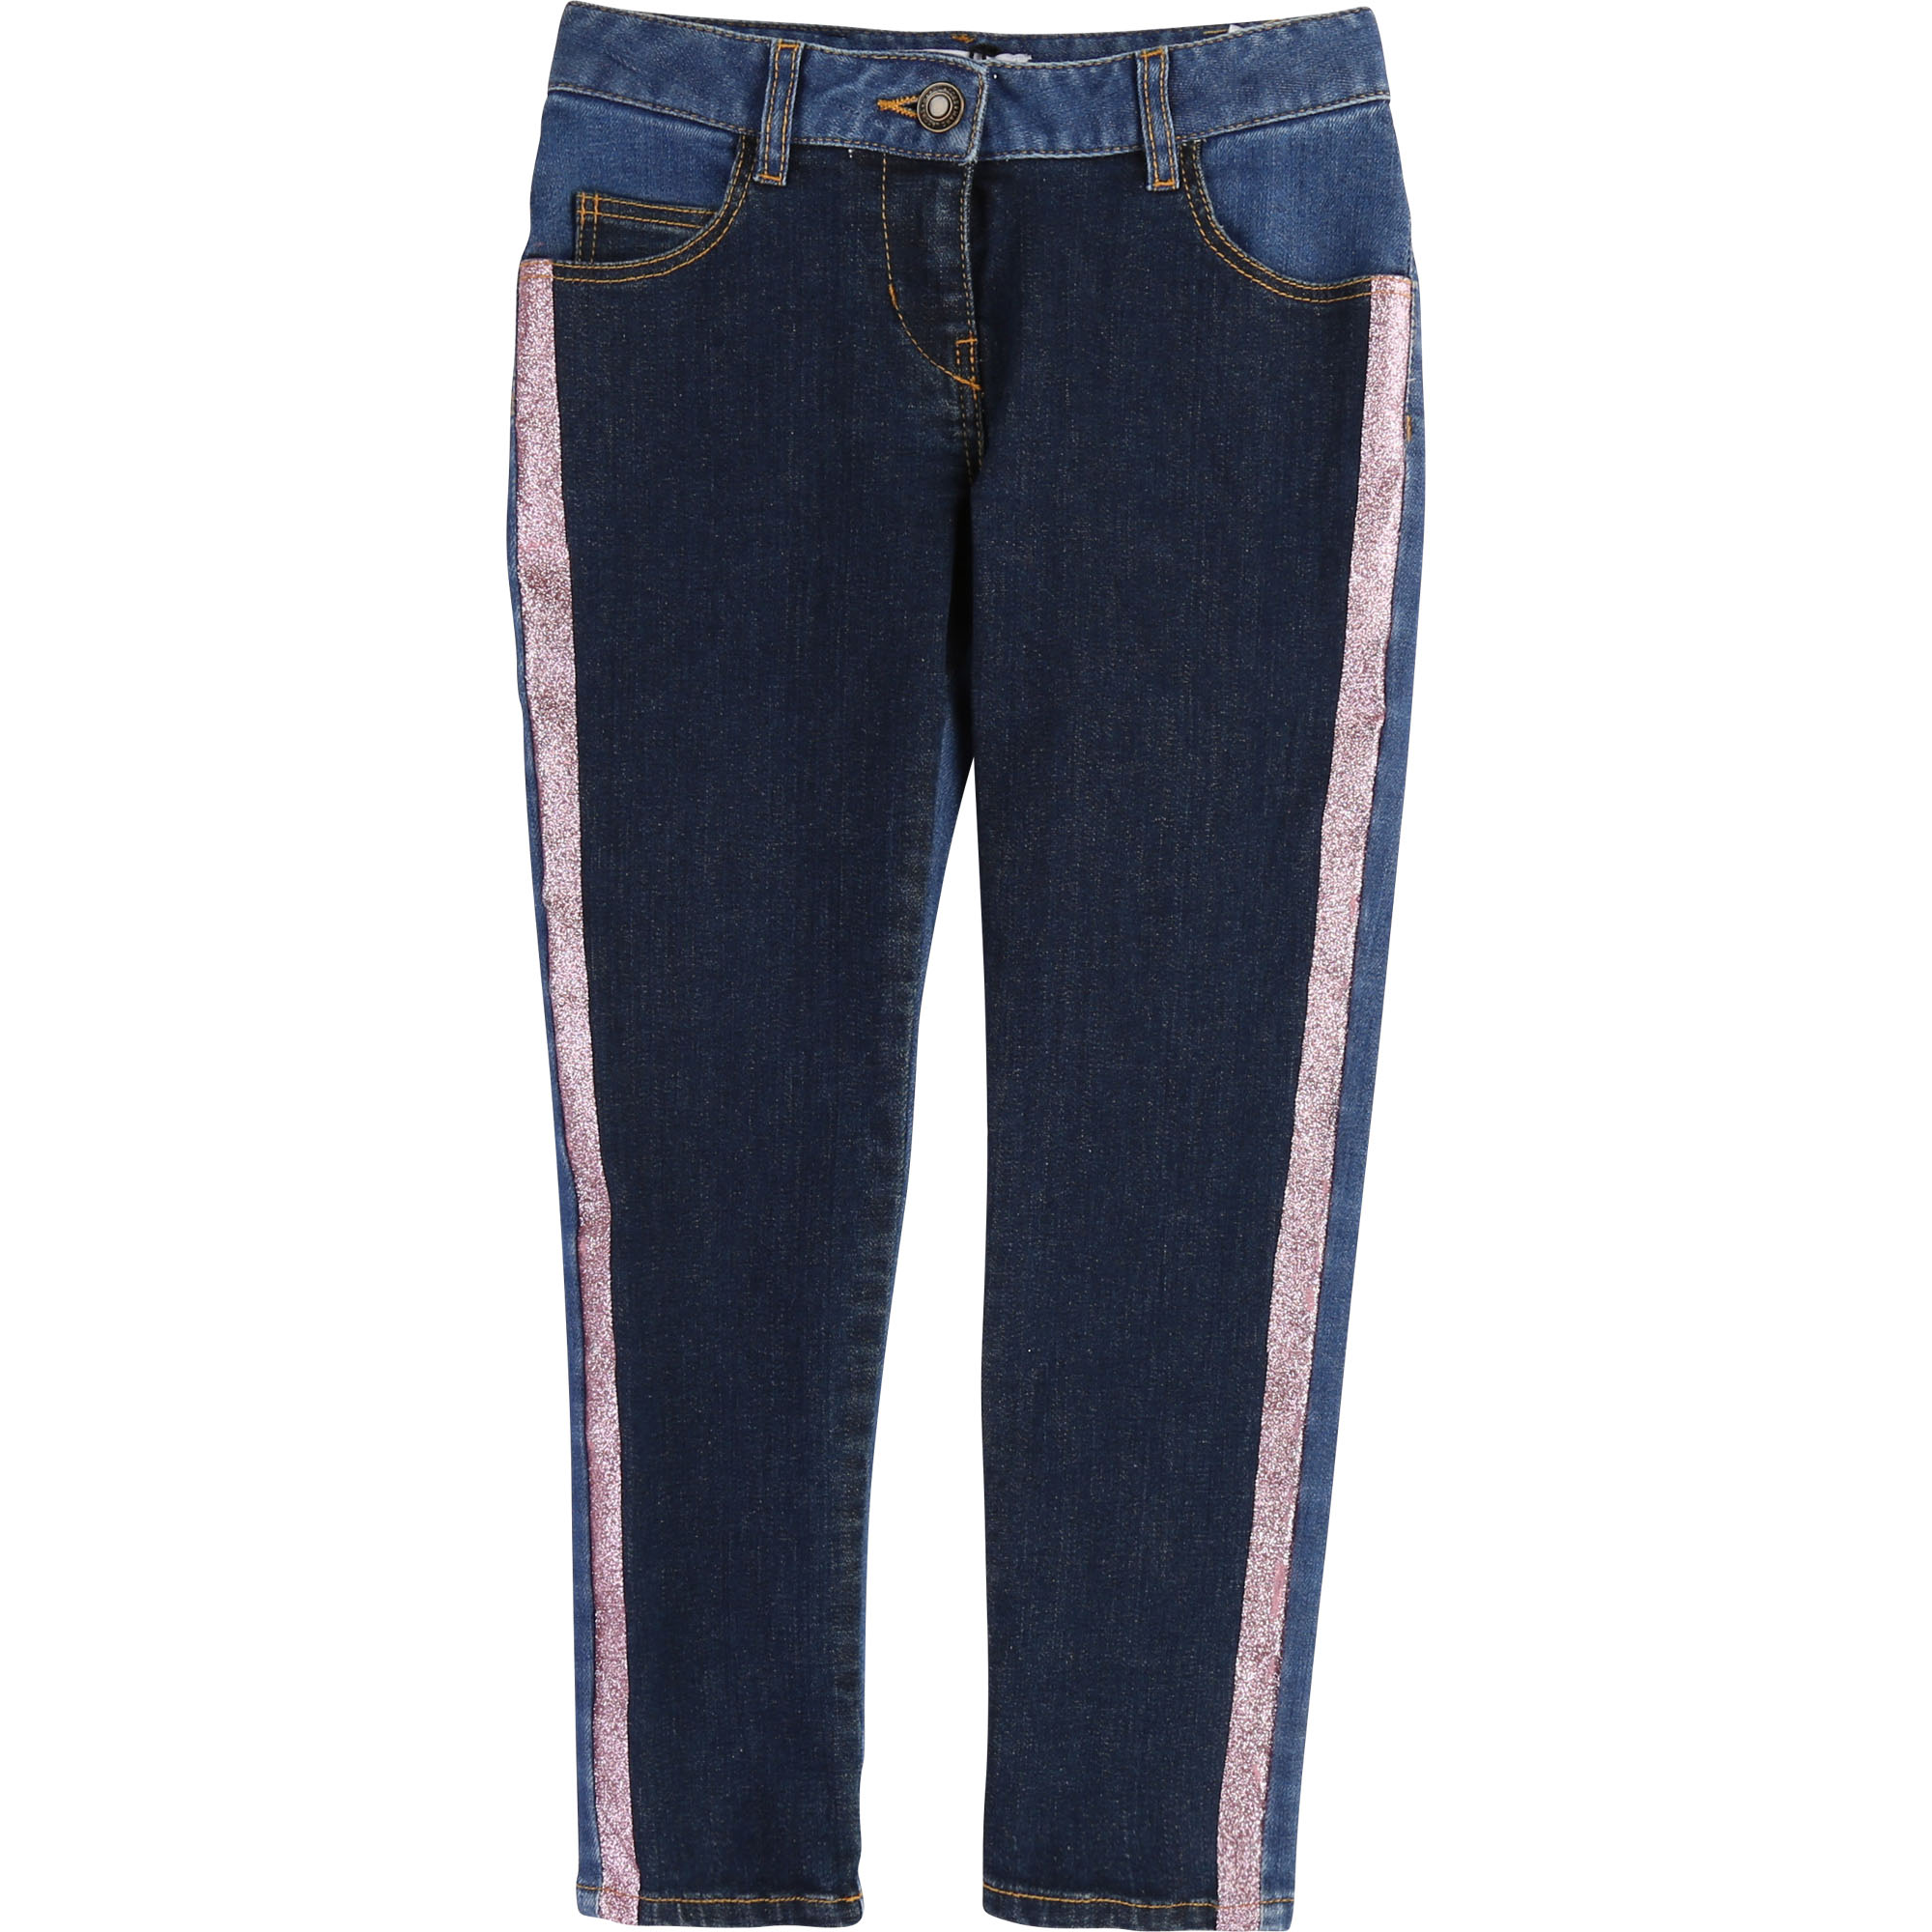 PANTALONE JEAN THE MARC JACOBS Per BAMBINA